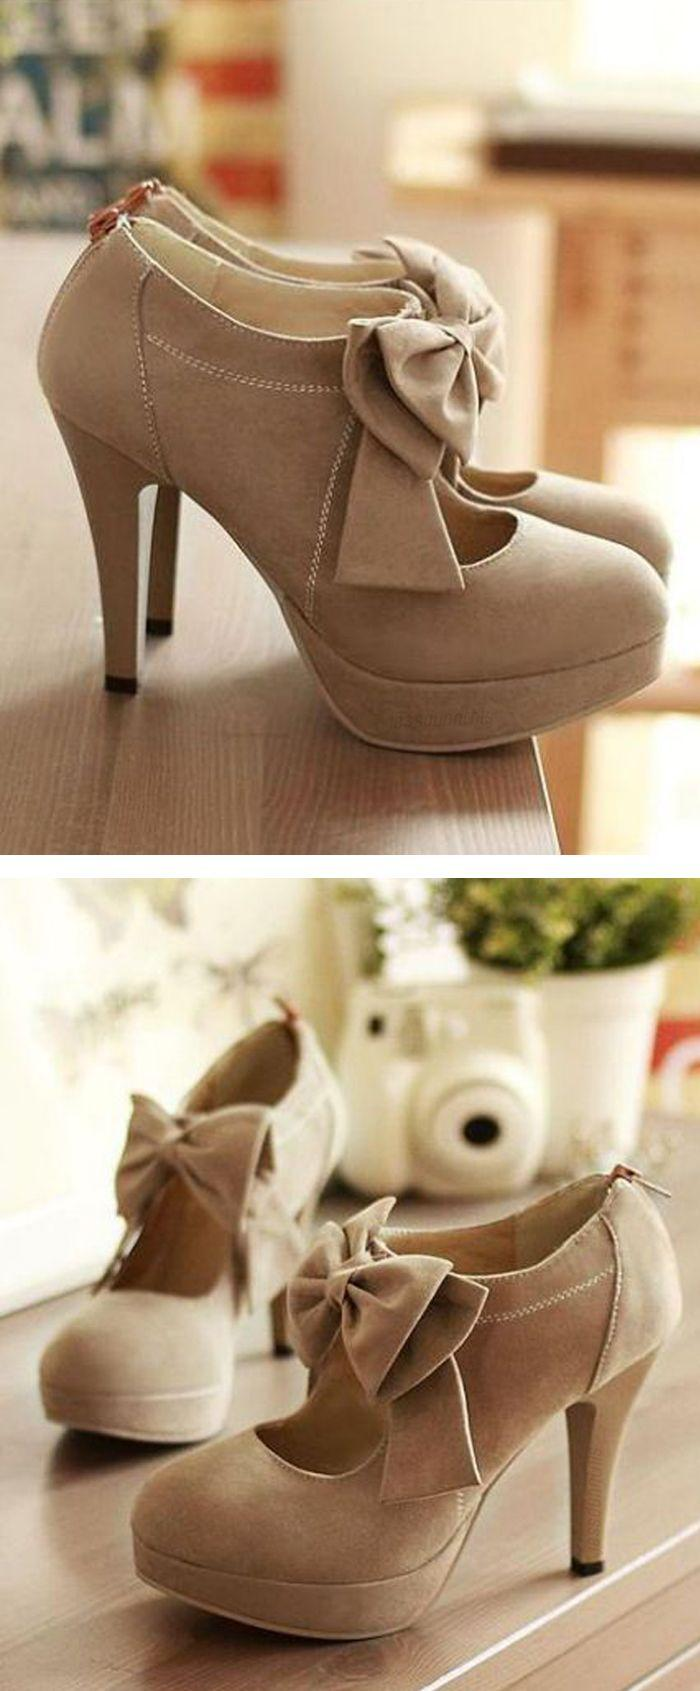 Wedding - Cute Bow Mary Jane Pumps